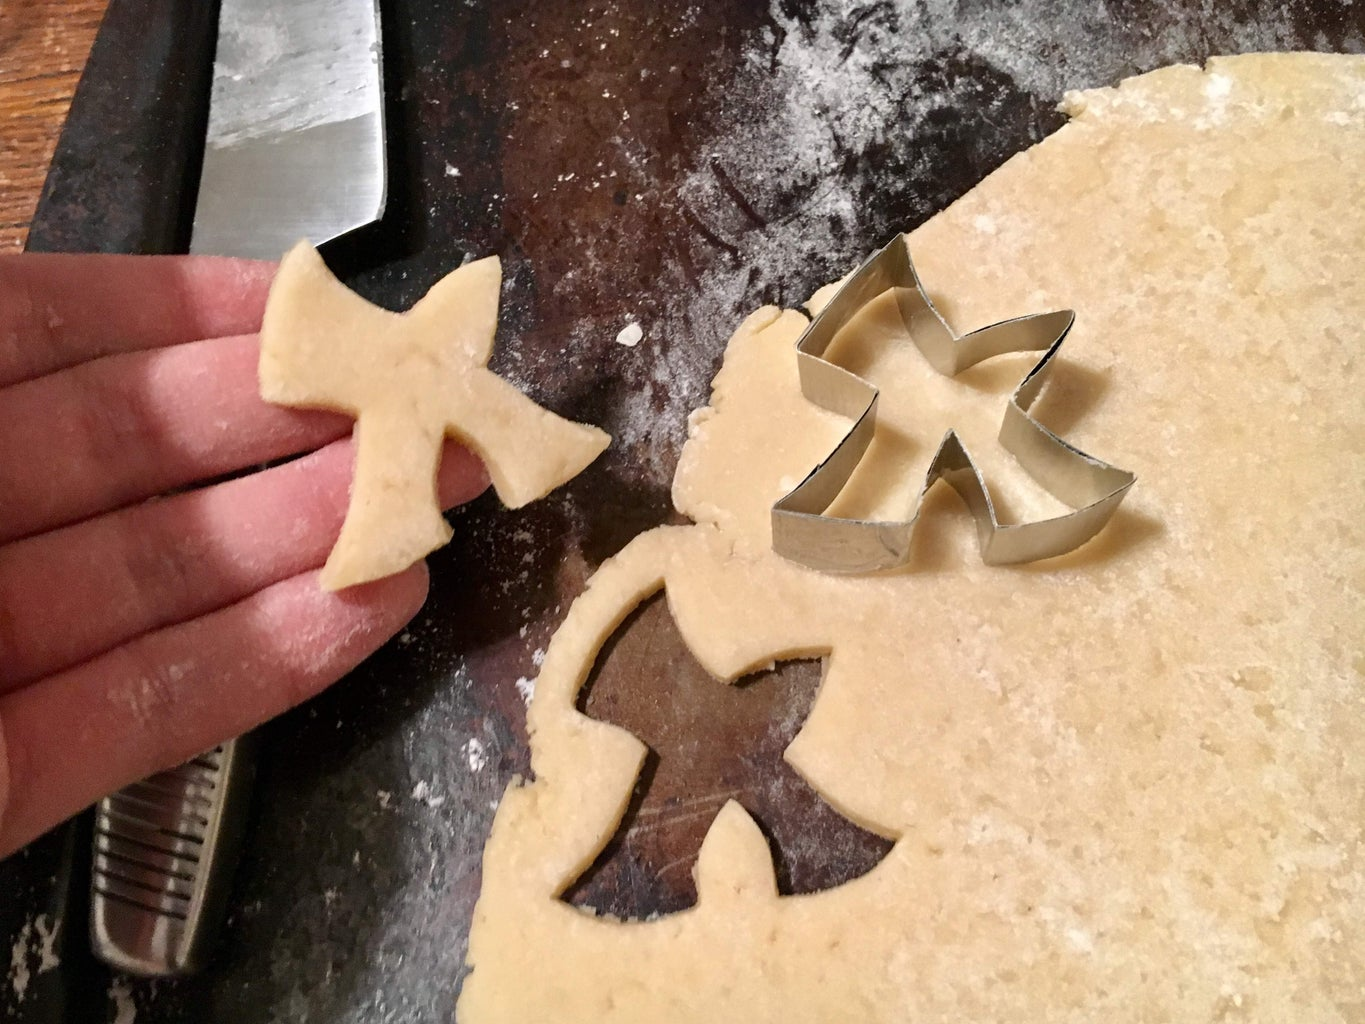 Roll, Cut, and Bake the Cookies